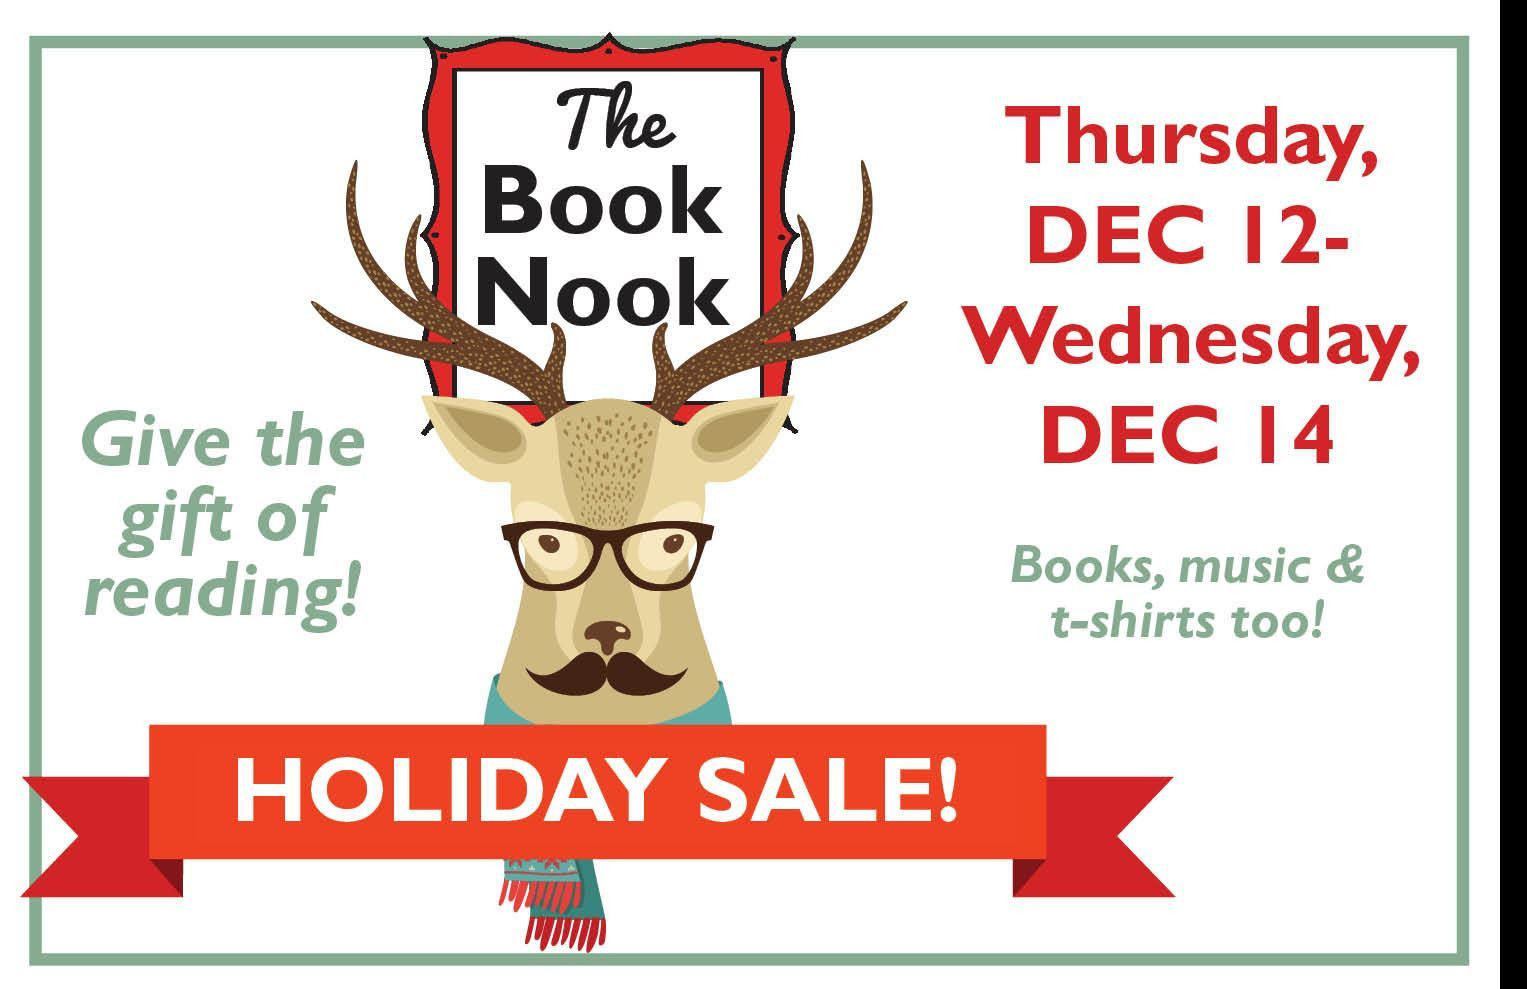 image for holiday book sale